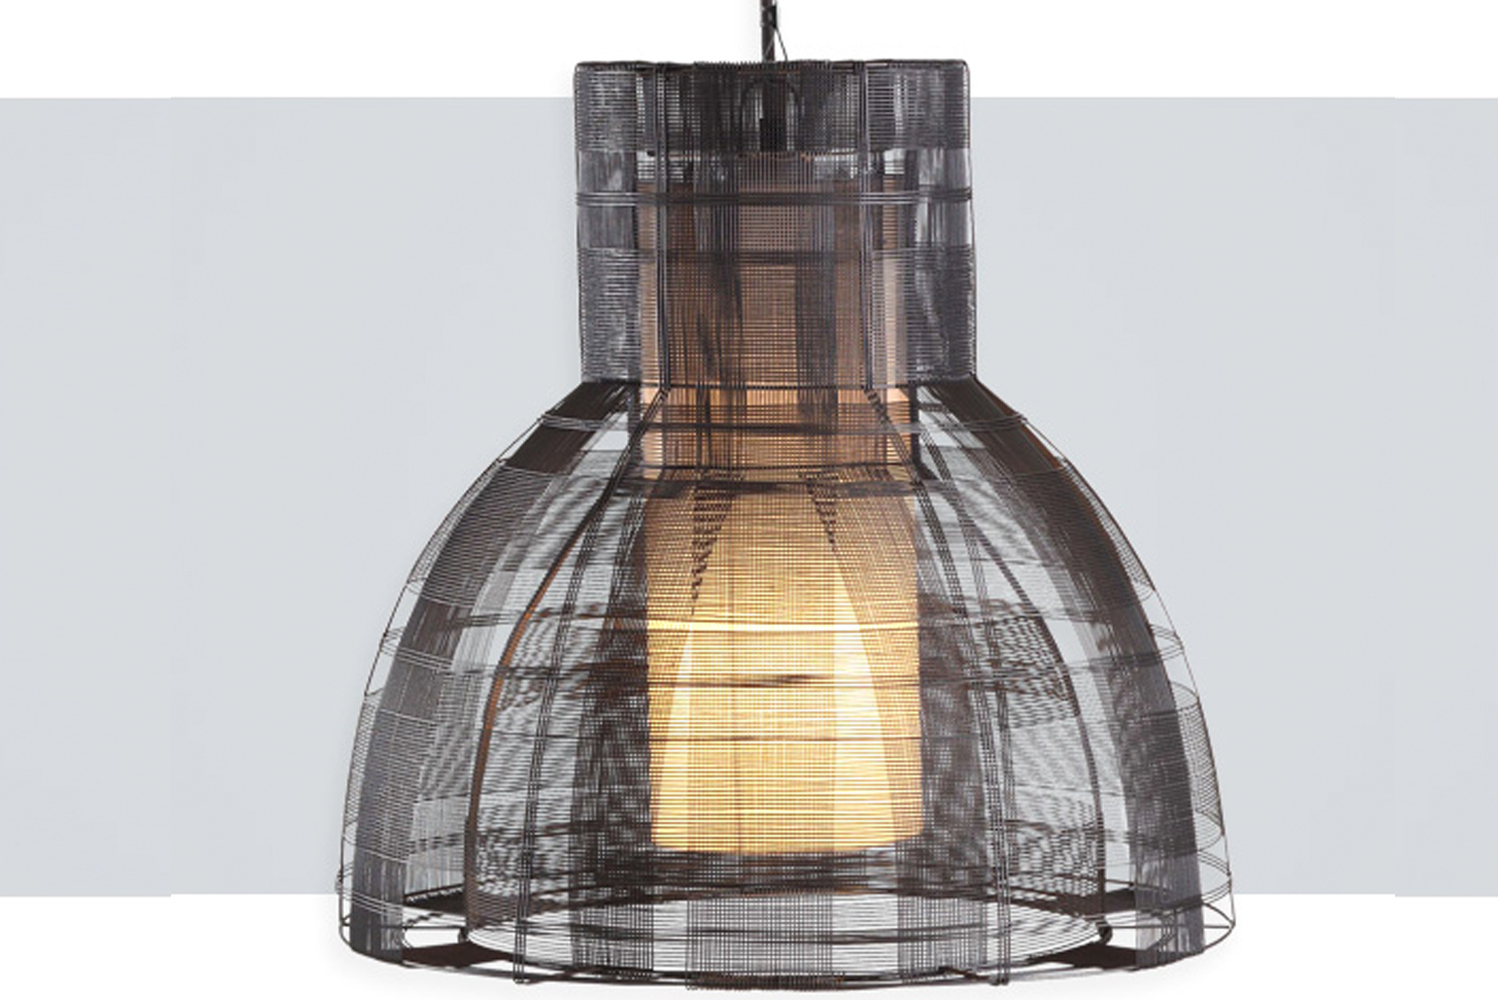 Urban by Uplight Group has a basket-like mesh woven from strands of galvanized iron.